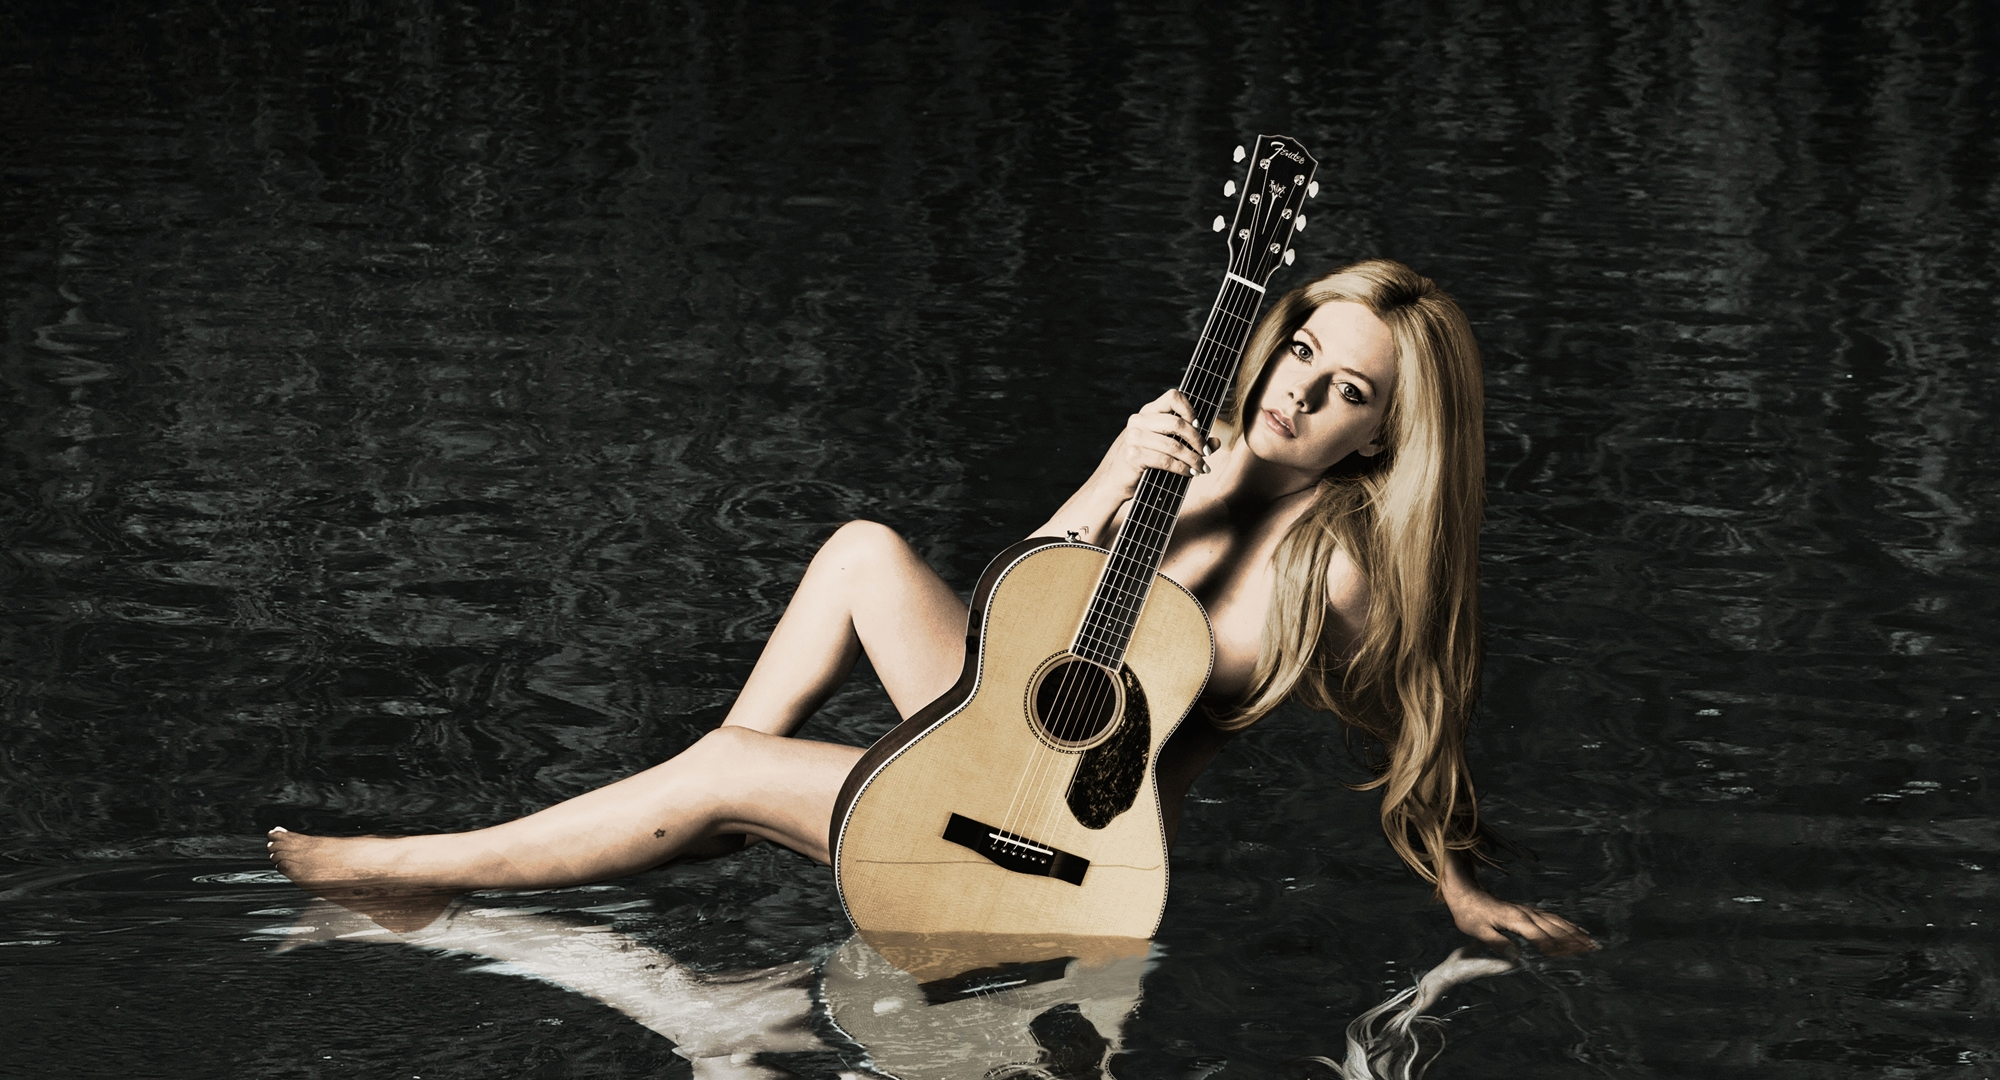 avril lavigne release album head above water